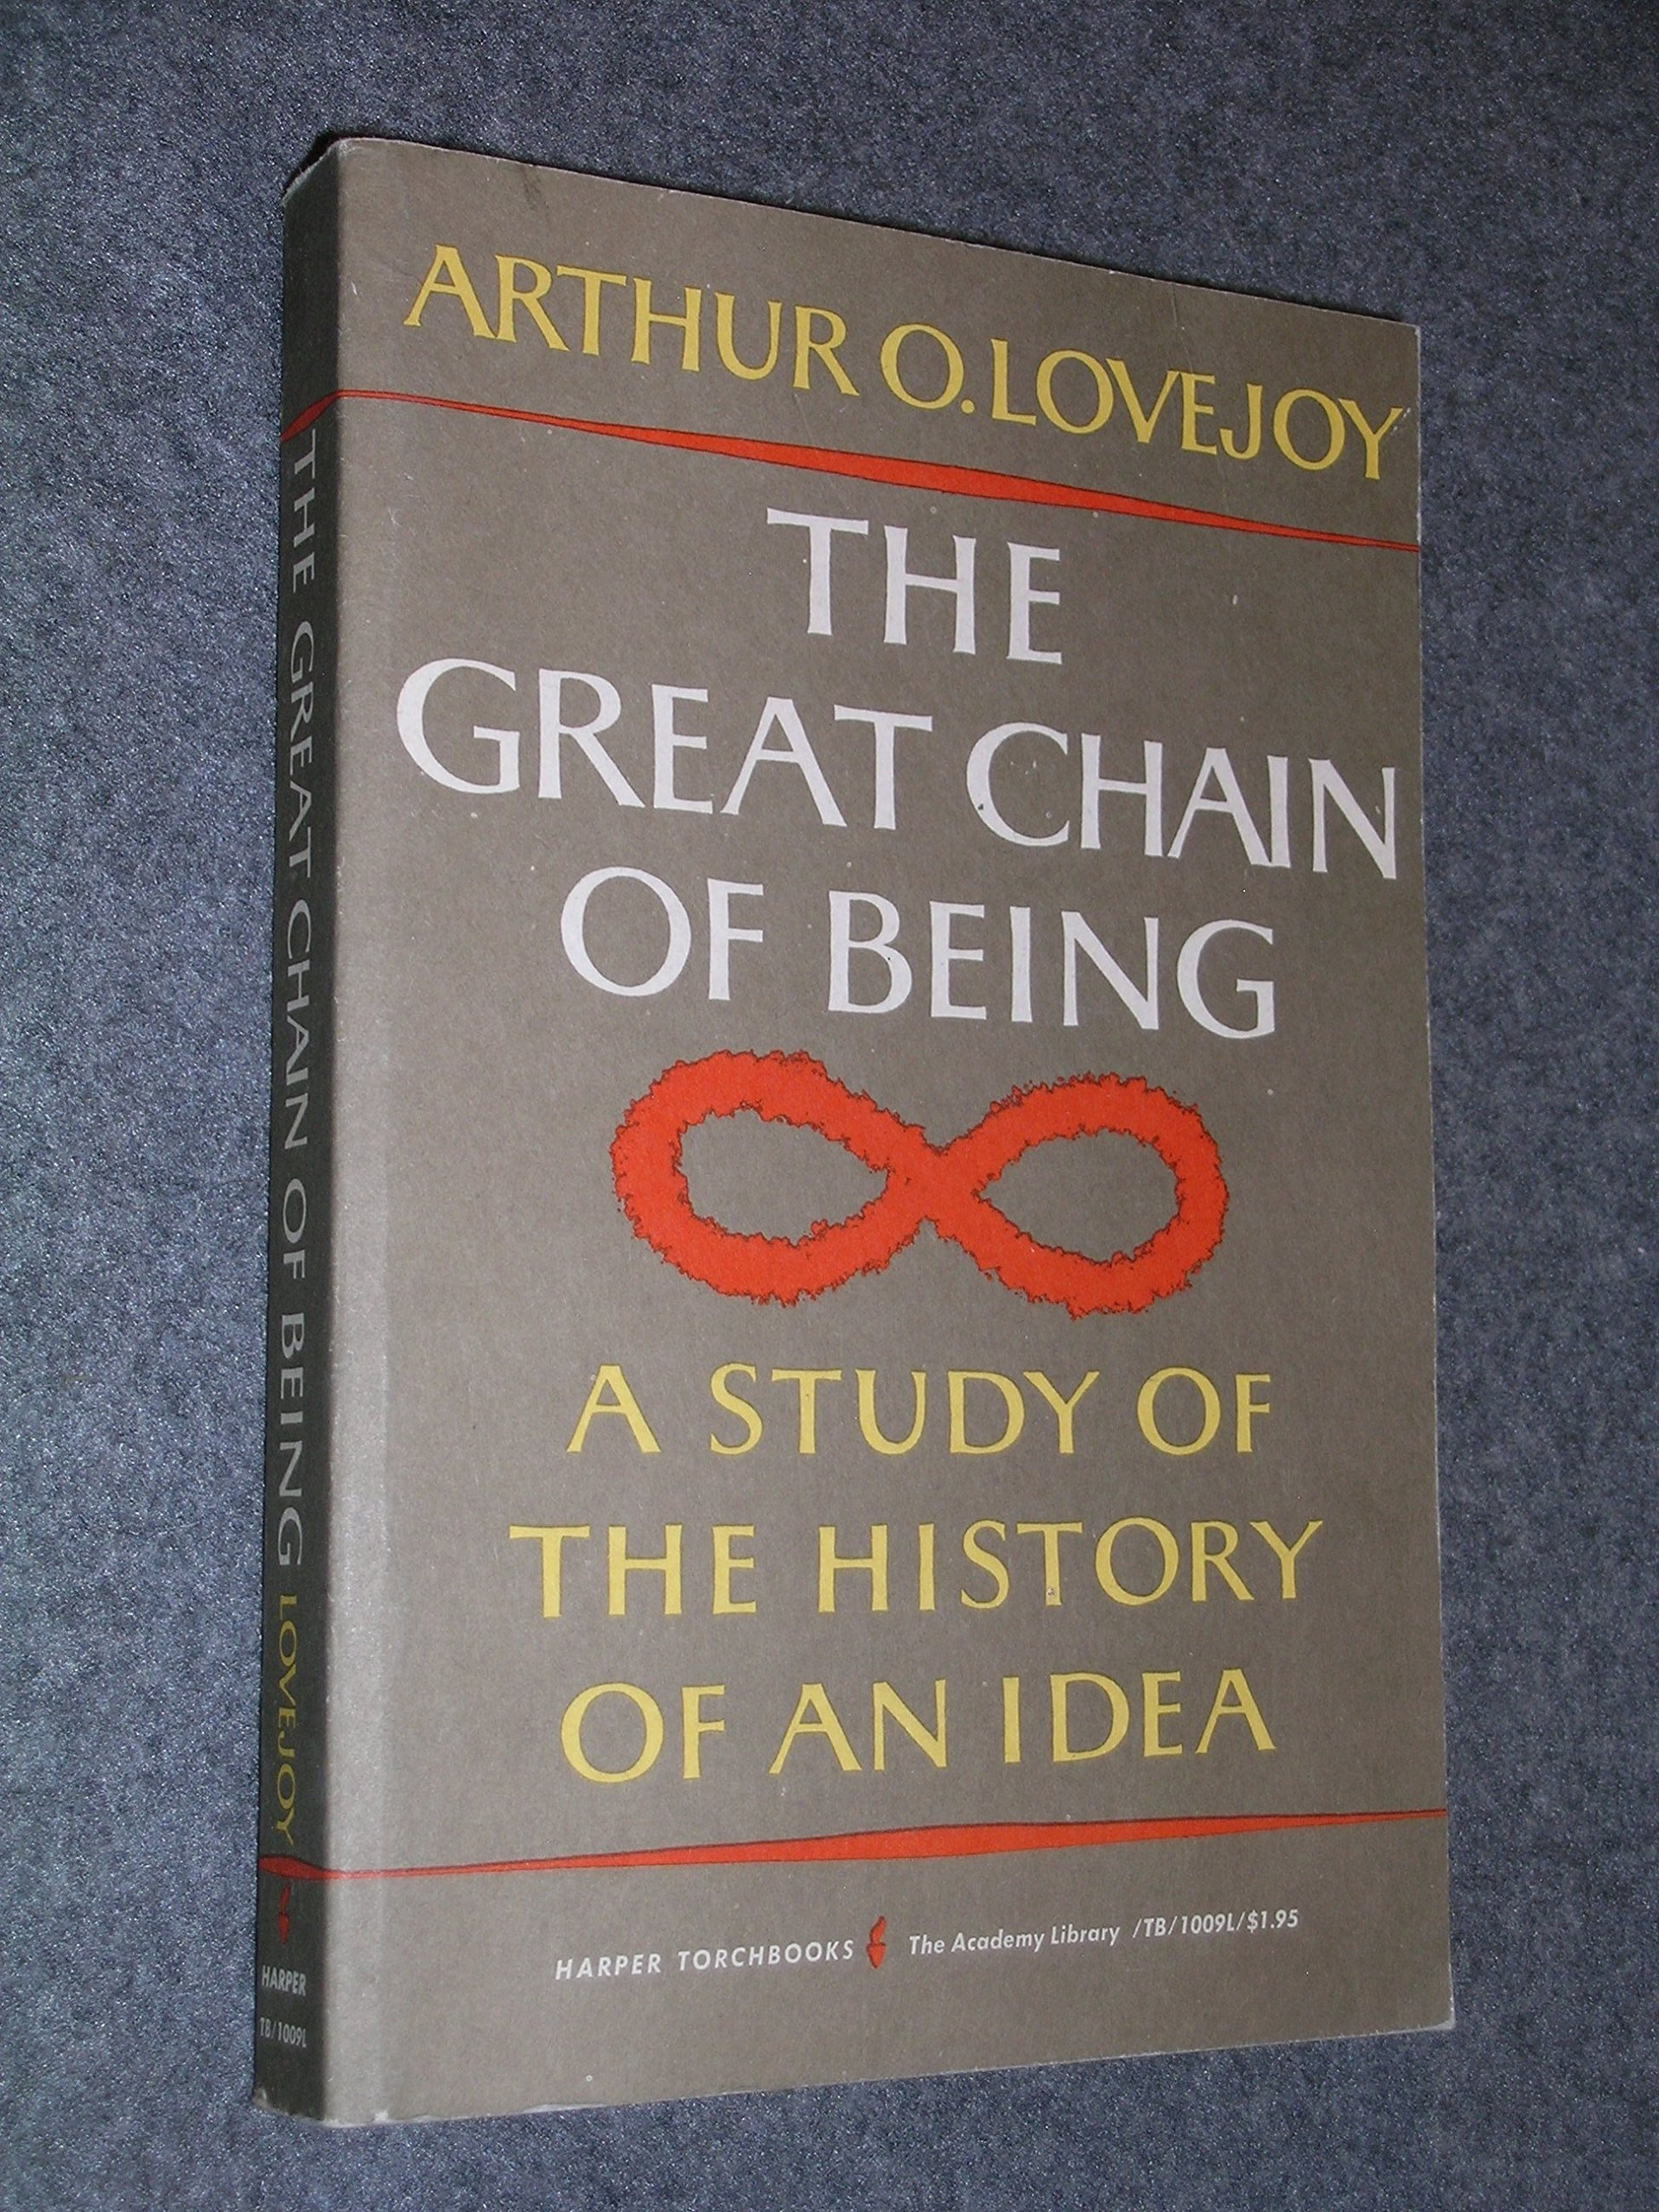 A Study of the History of an Idea The Great Chain of Being